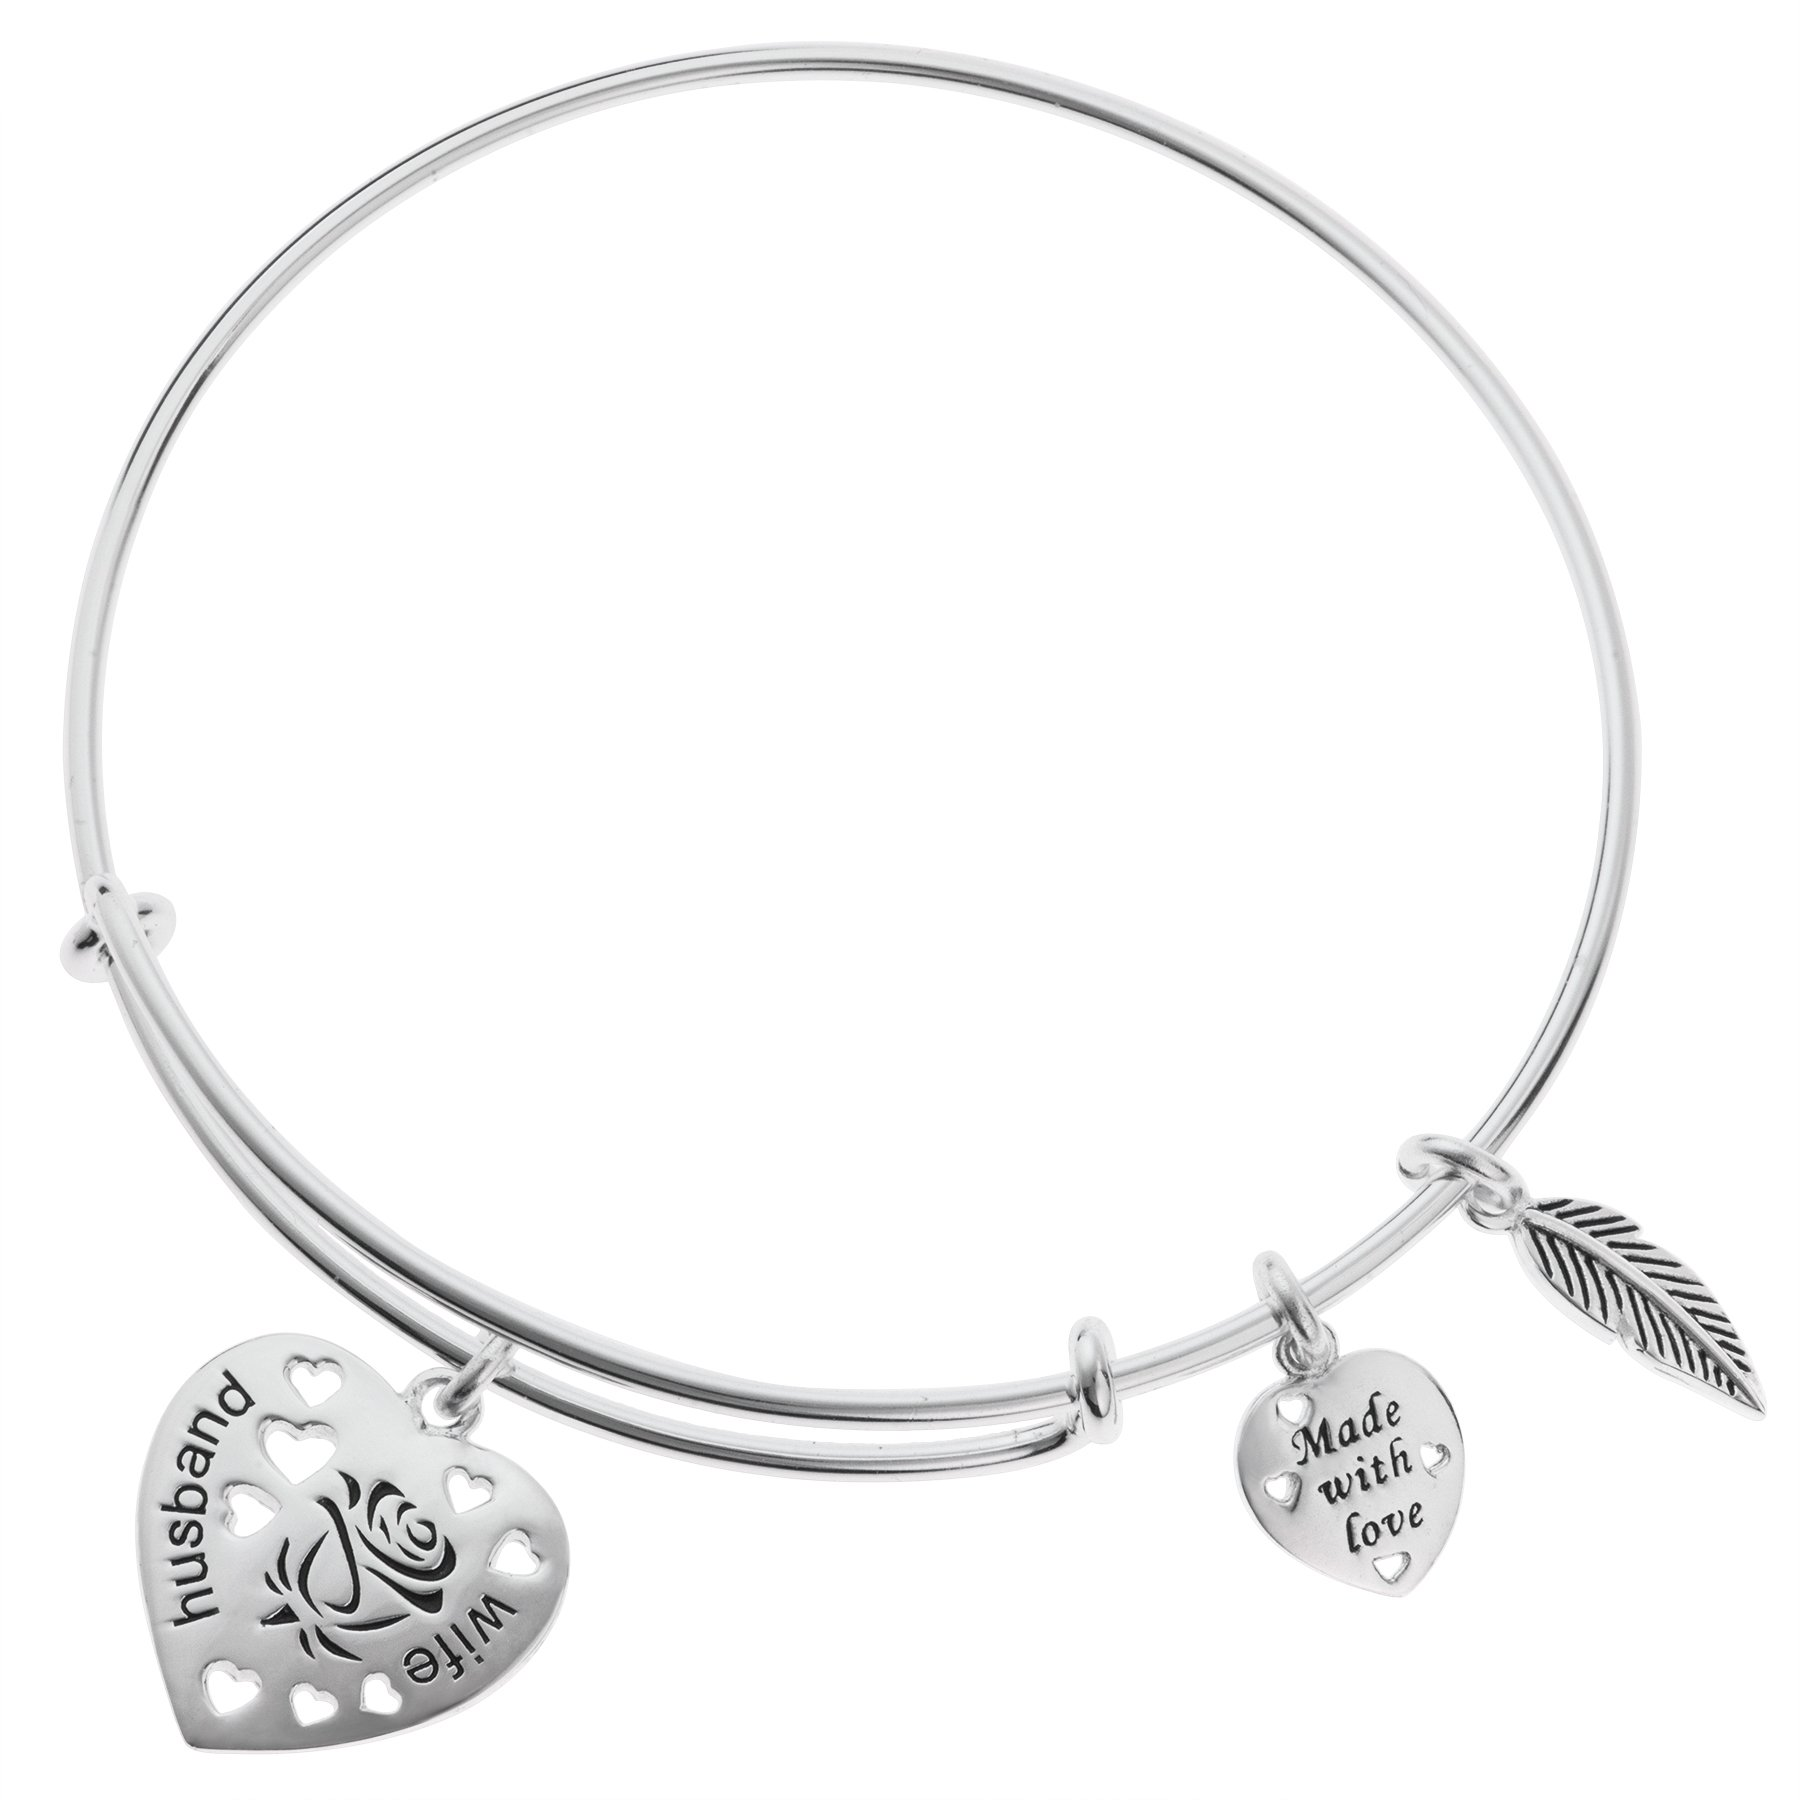 925 Sterling Silver Rose Husband & Wife Heart Feather Charm Adjustable Wire Bangle Bracelet